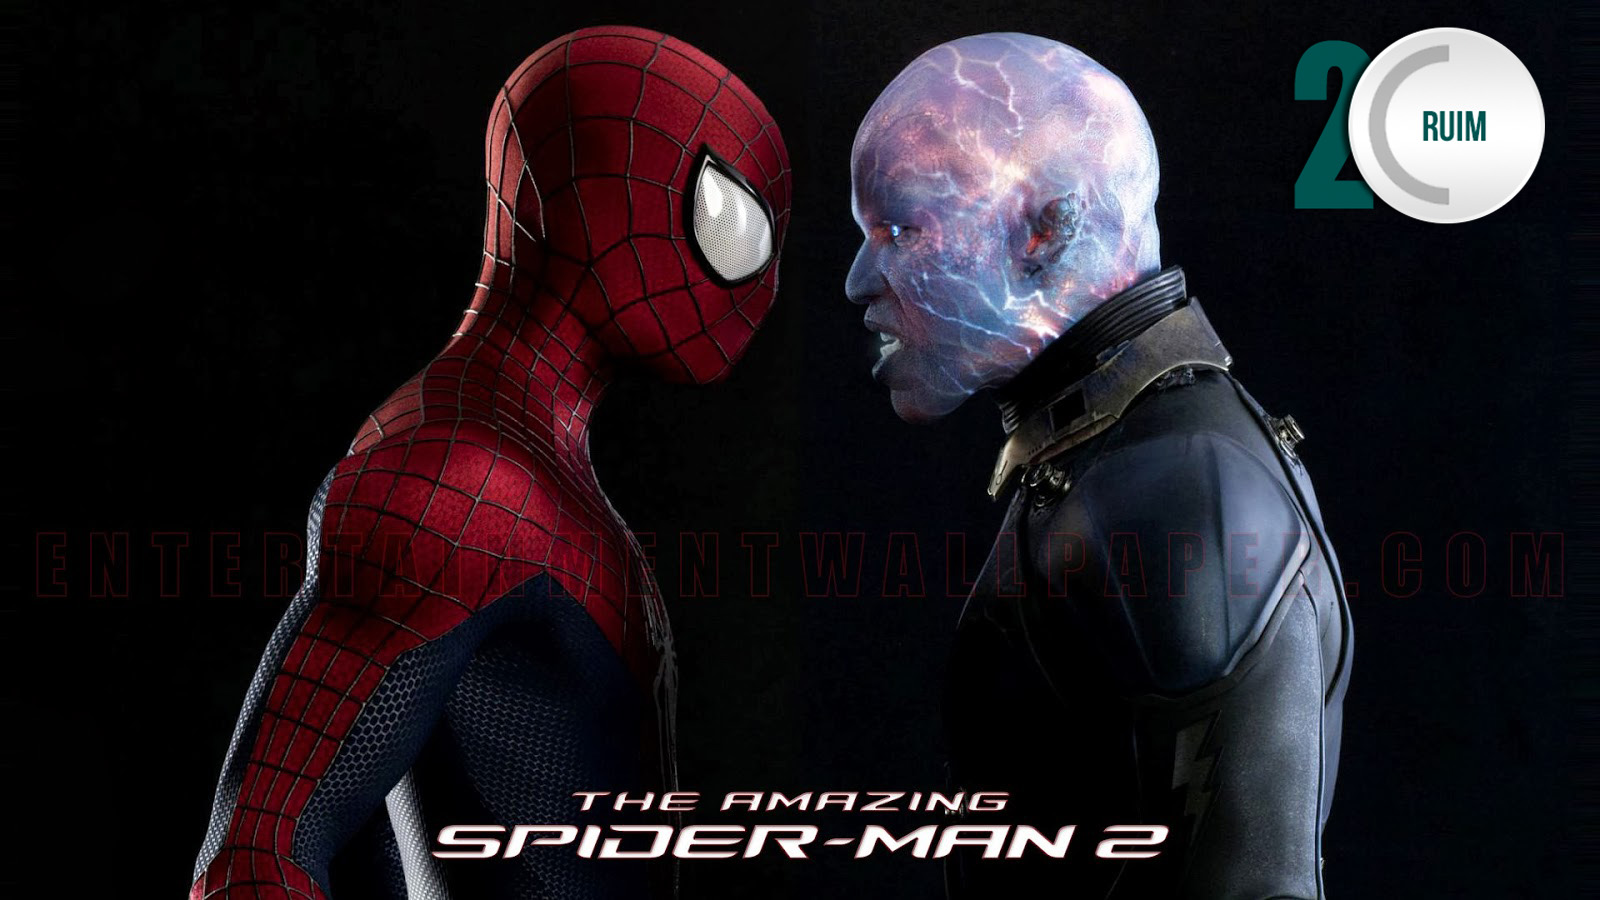 bfbf9-the-amazing-spider-man-2-movies-2014-hd-wallpaper